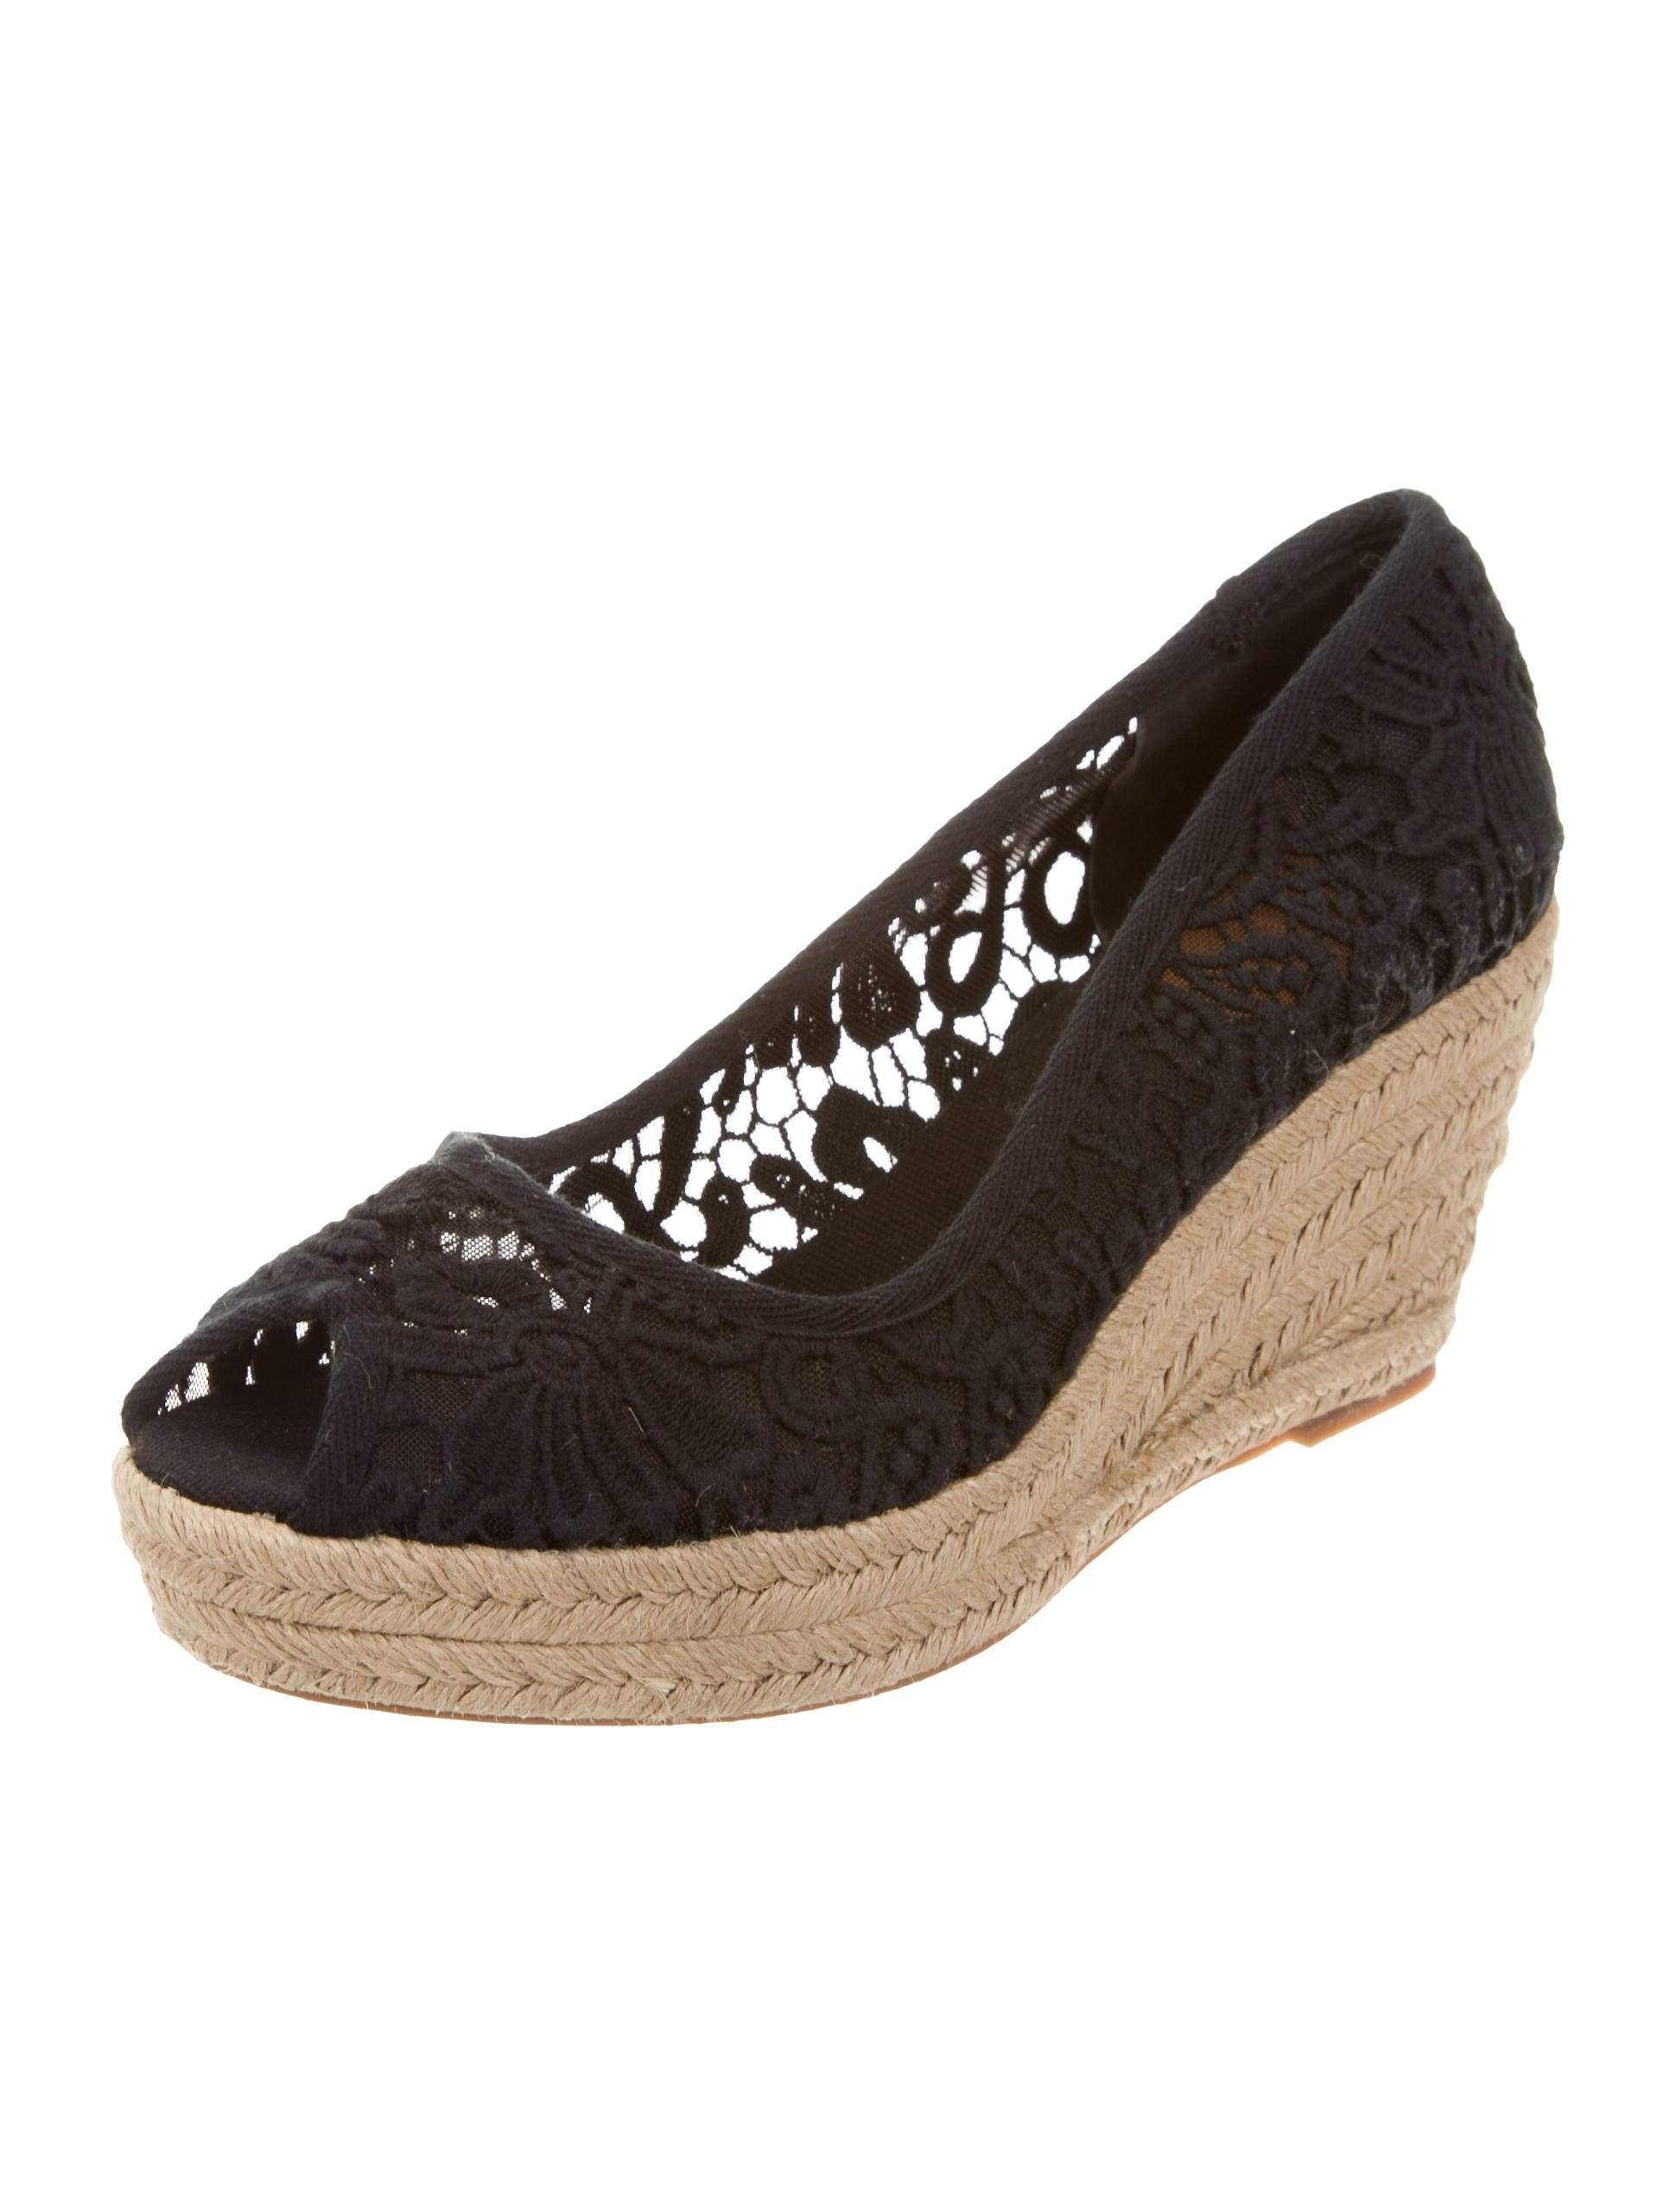 Inspirational tory Burch Crochet Espadrille Wedges Shoes Wto Crochet Espadrille Of Lovely 49 Images Crochet Espadrille